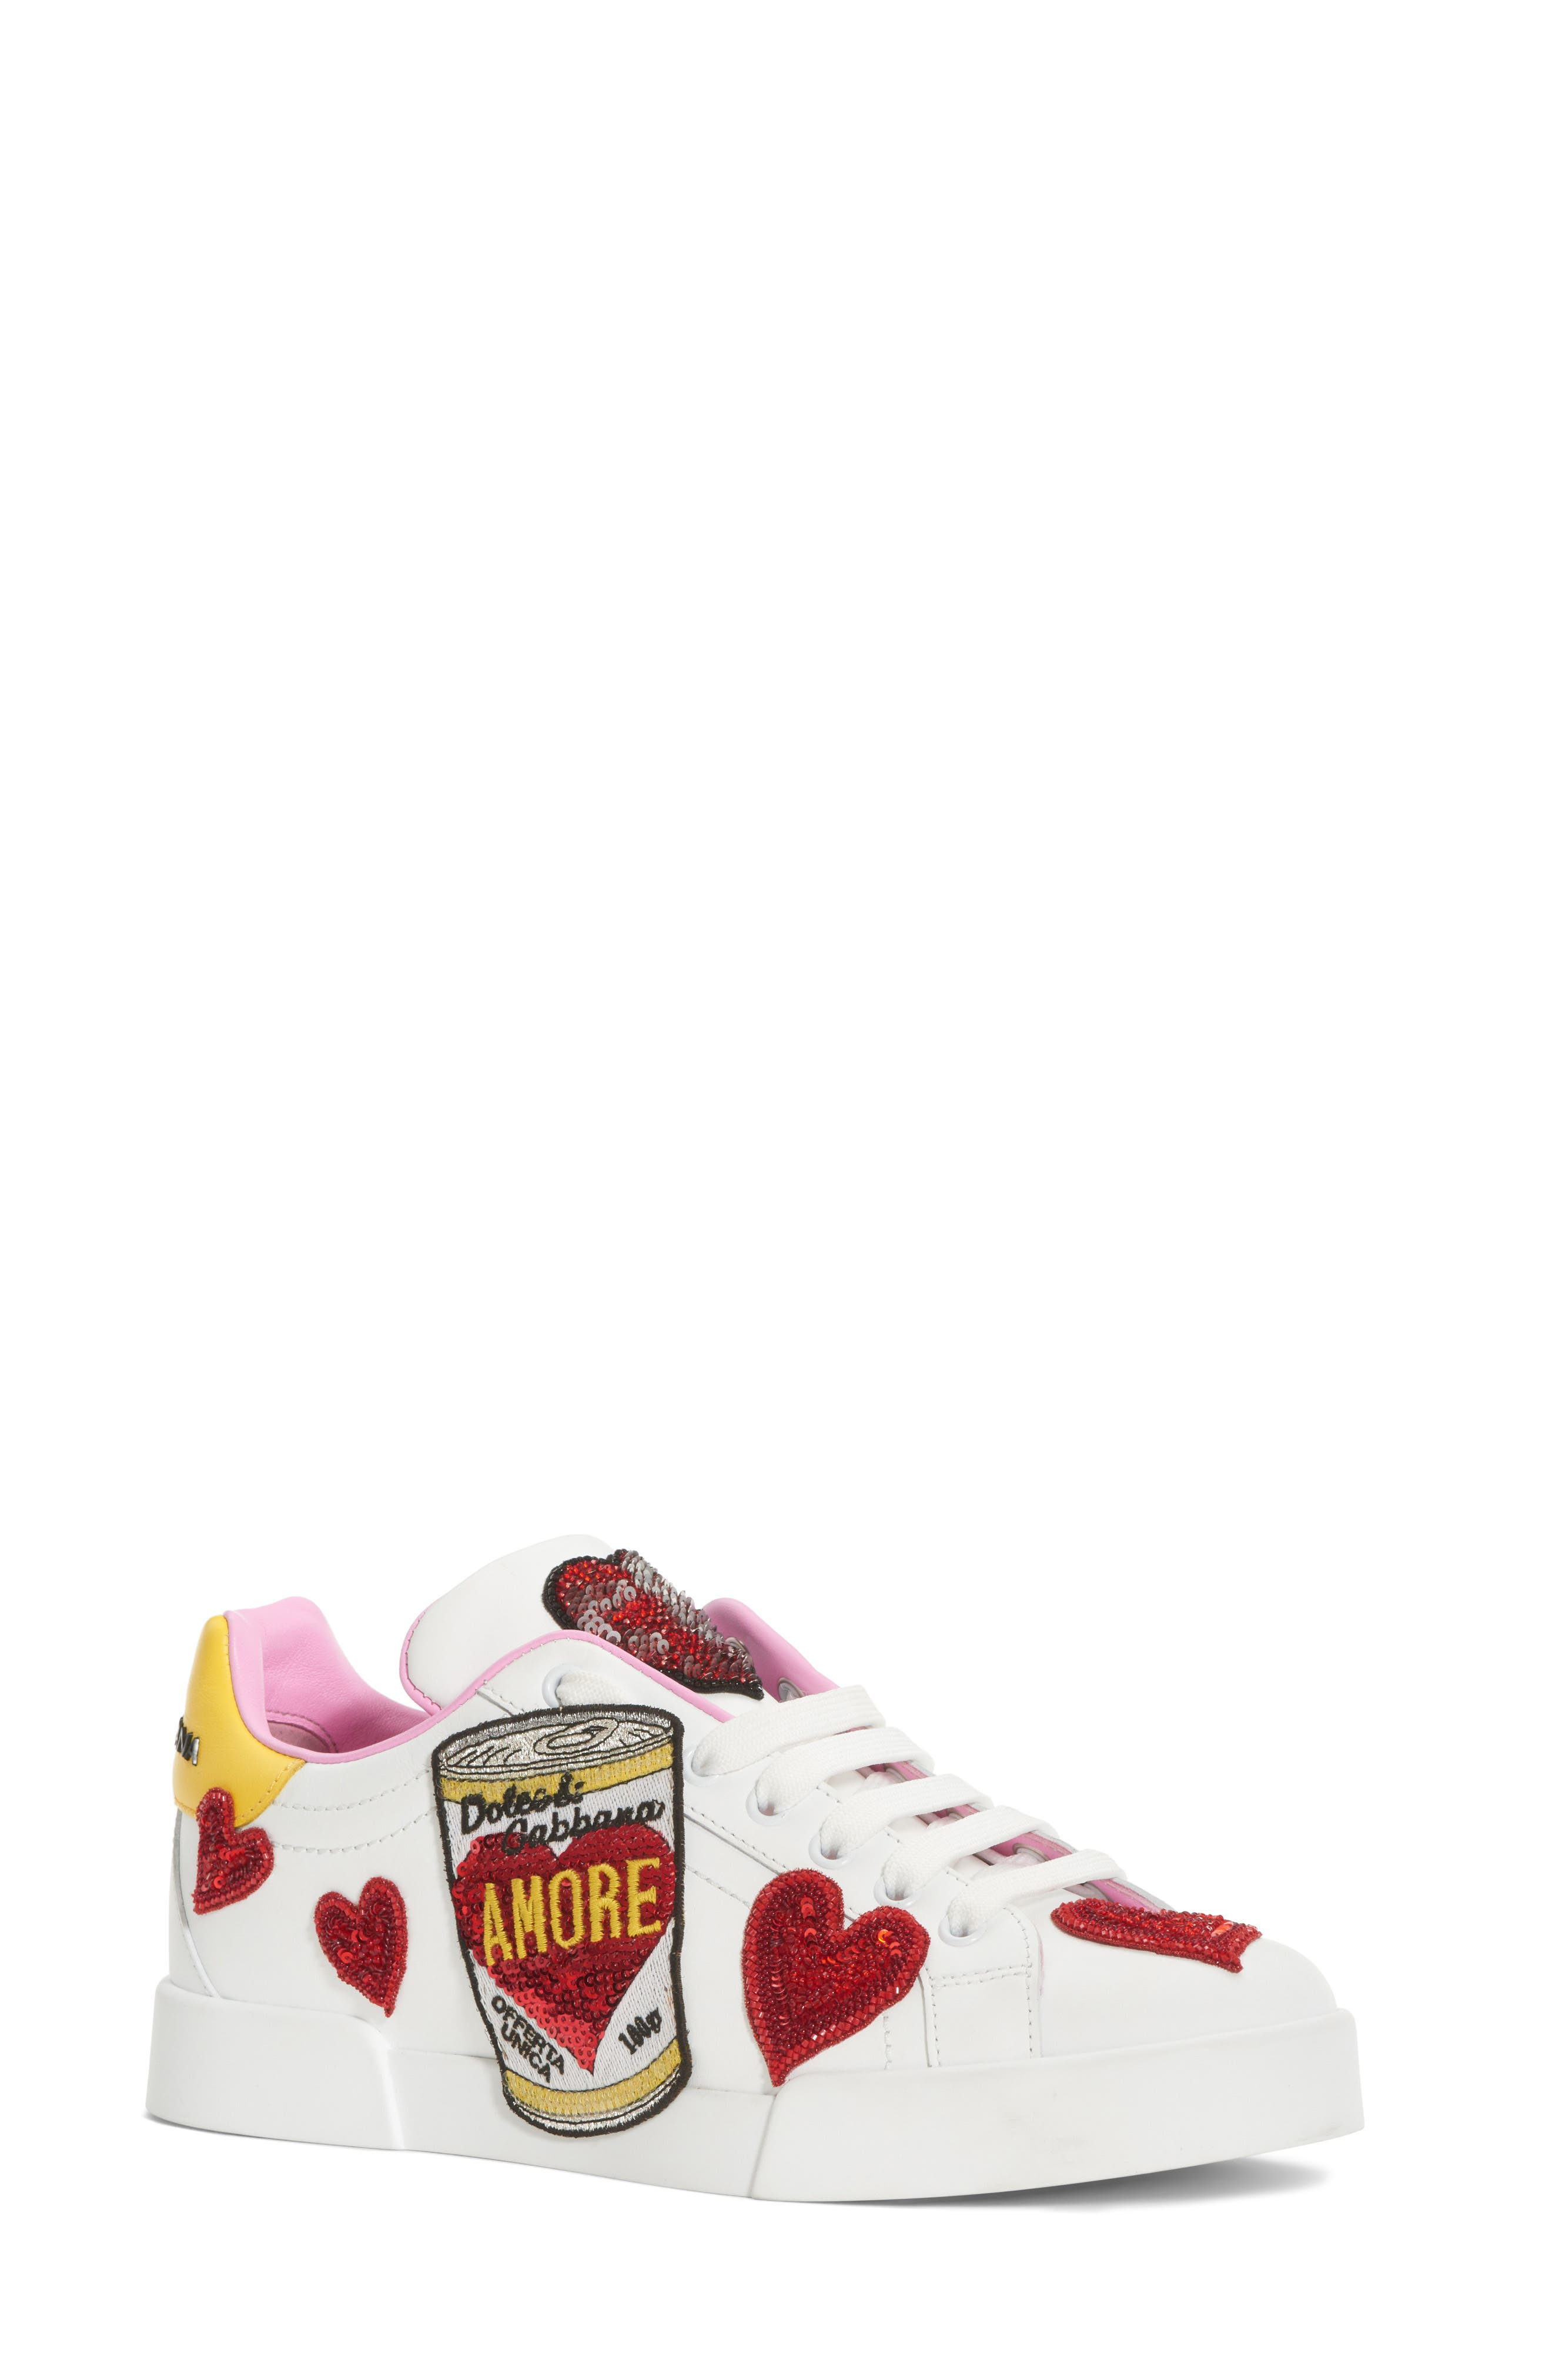 Dolce&Gabbana Amore Lace-Up Sneaker (Women)